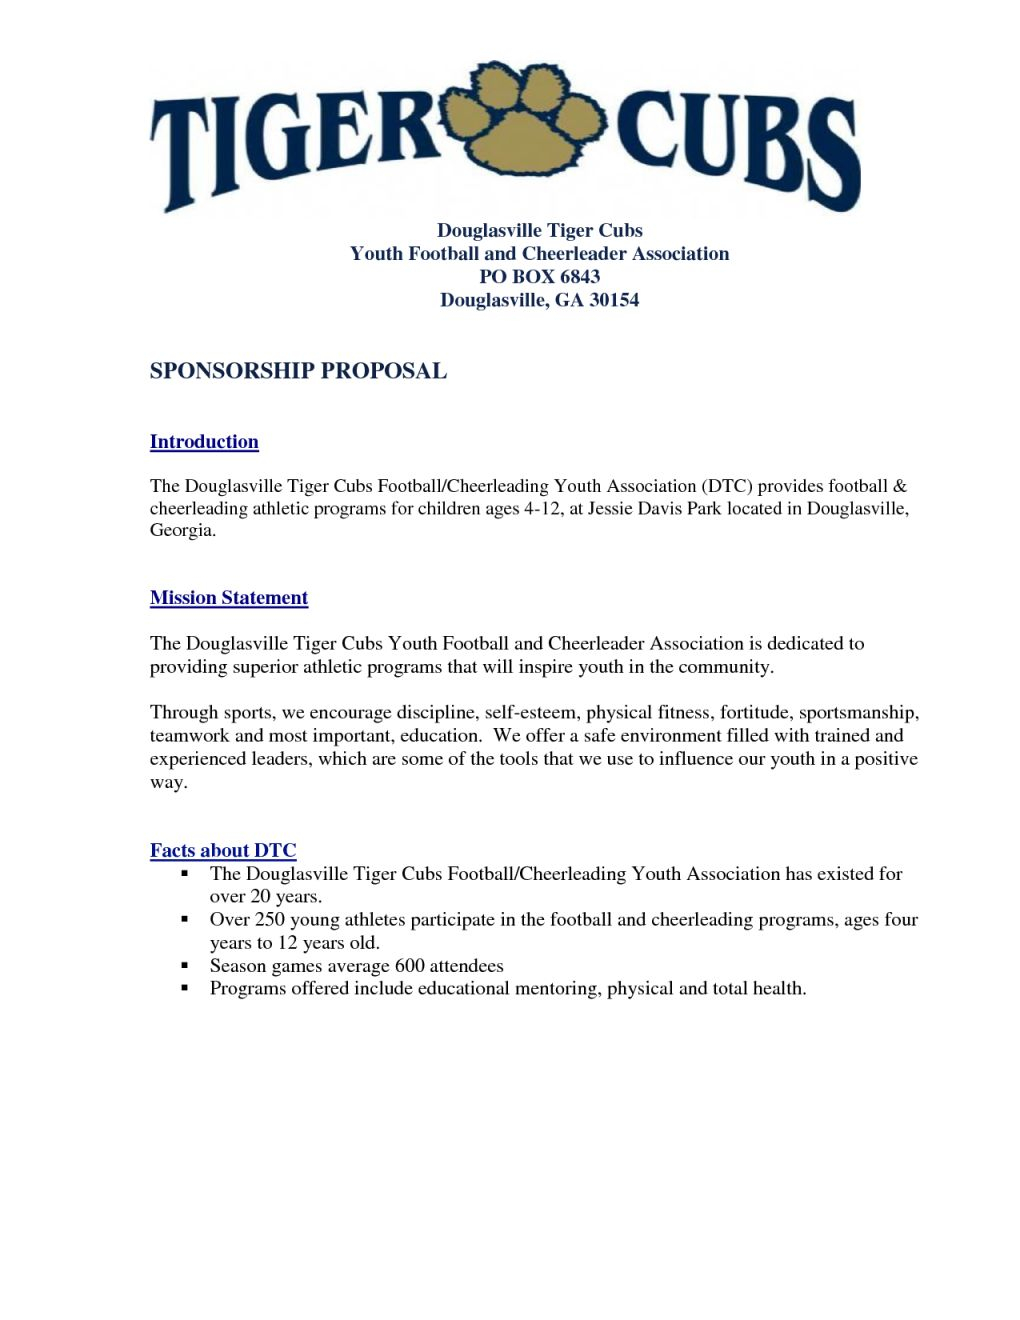 Youth Baseball Sponsorship Letter Template - Fabulous Sports Sponsorship Proposal Template Ch06 – Documentaries